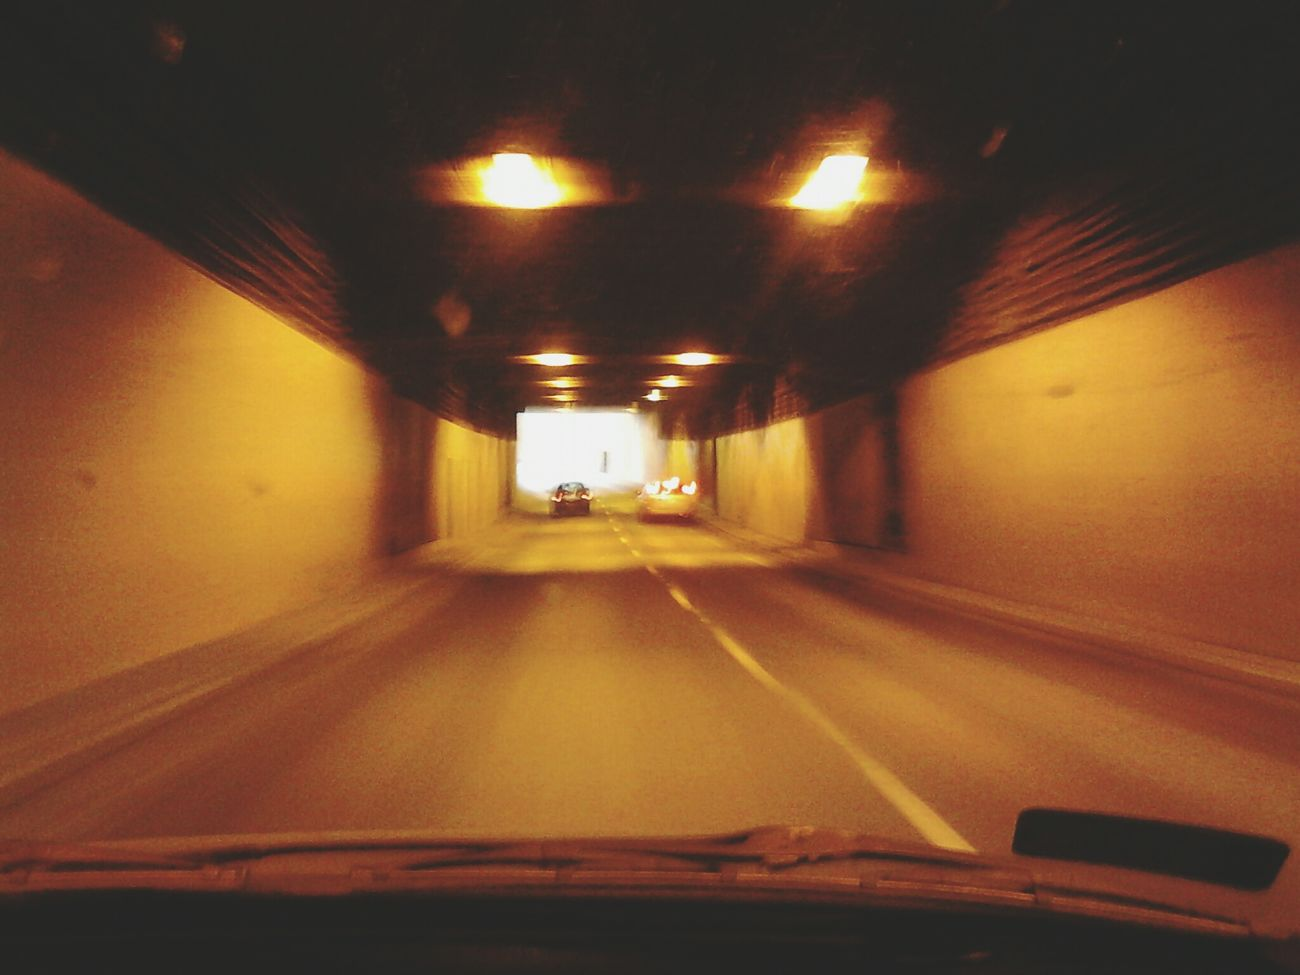 Travel Traveling Newobsession Car Tunel Light Night